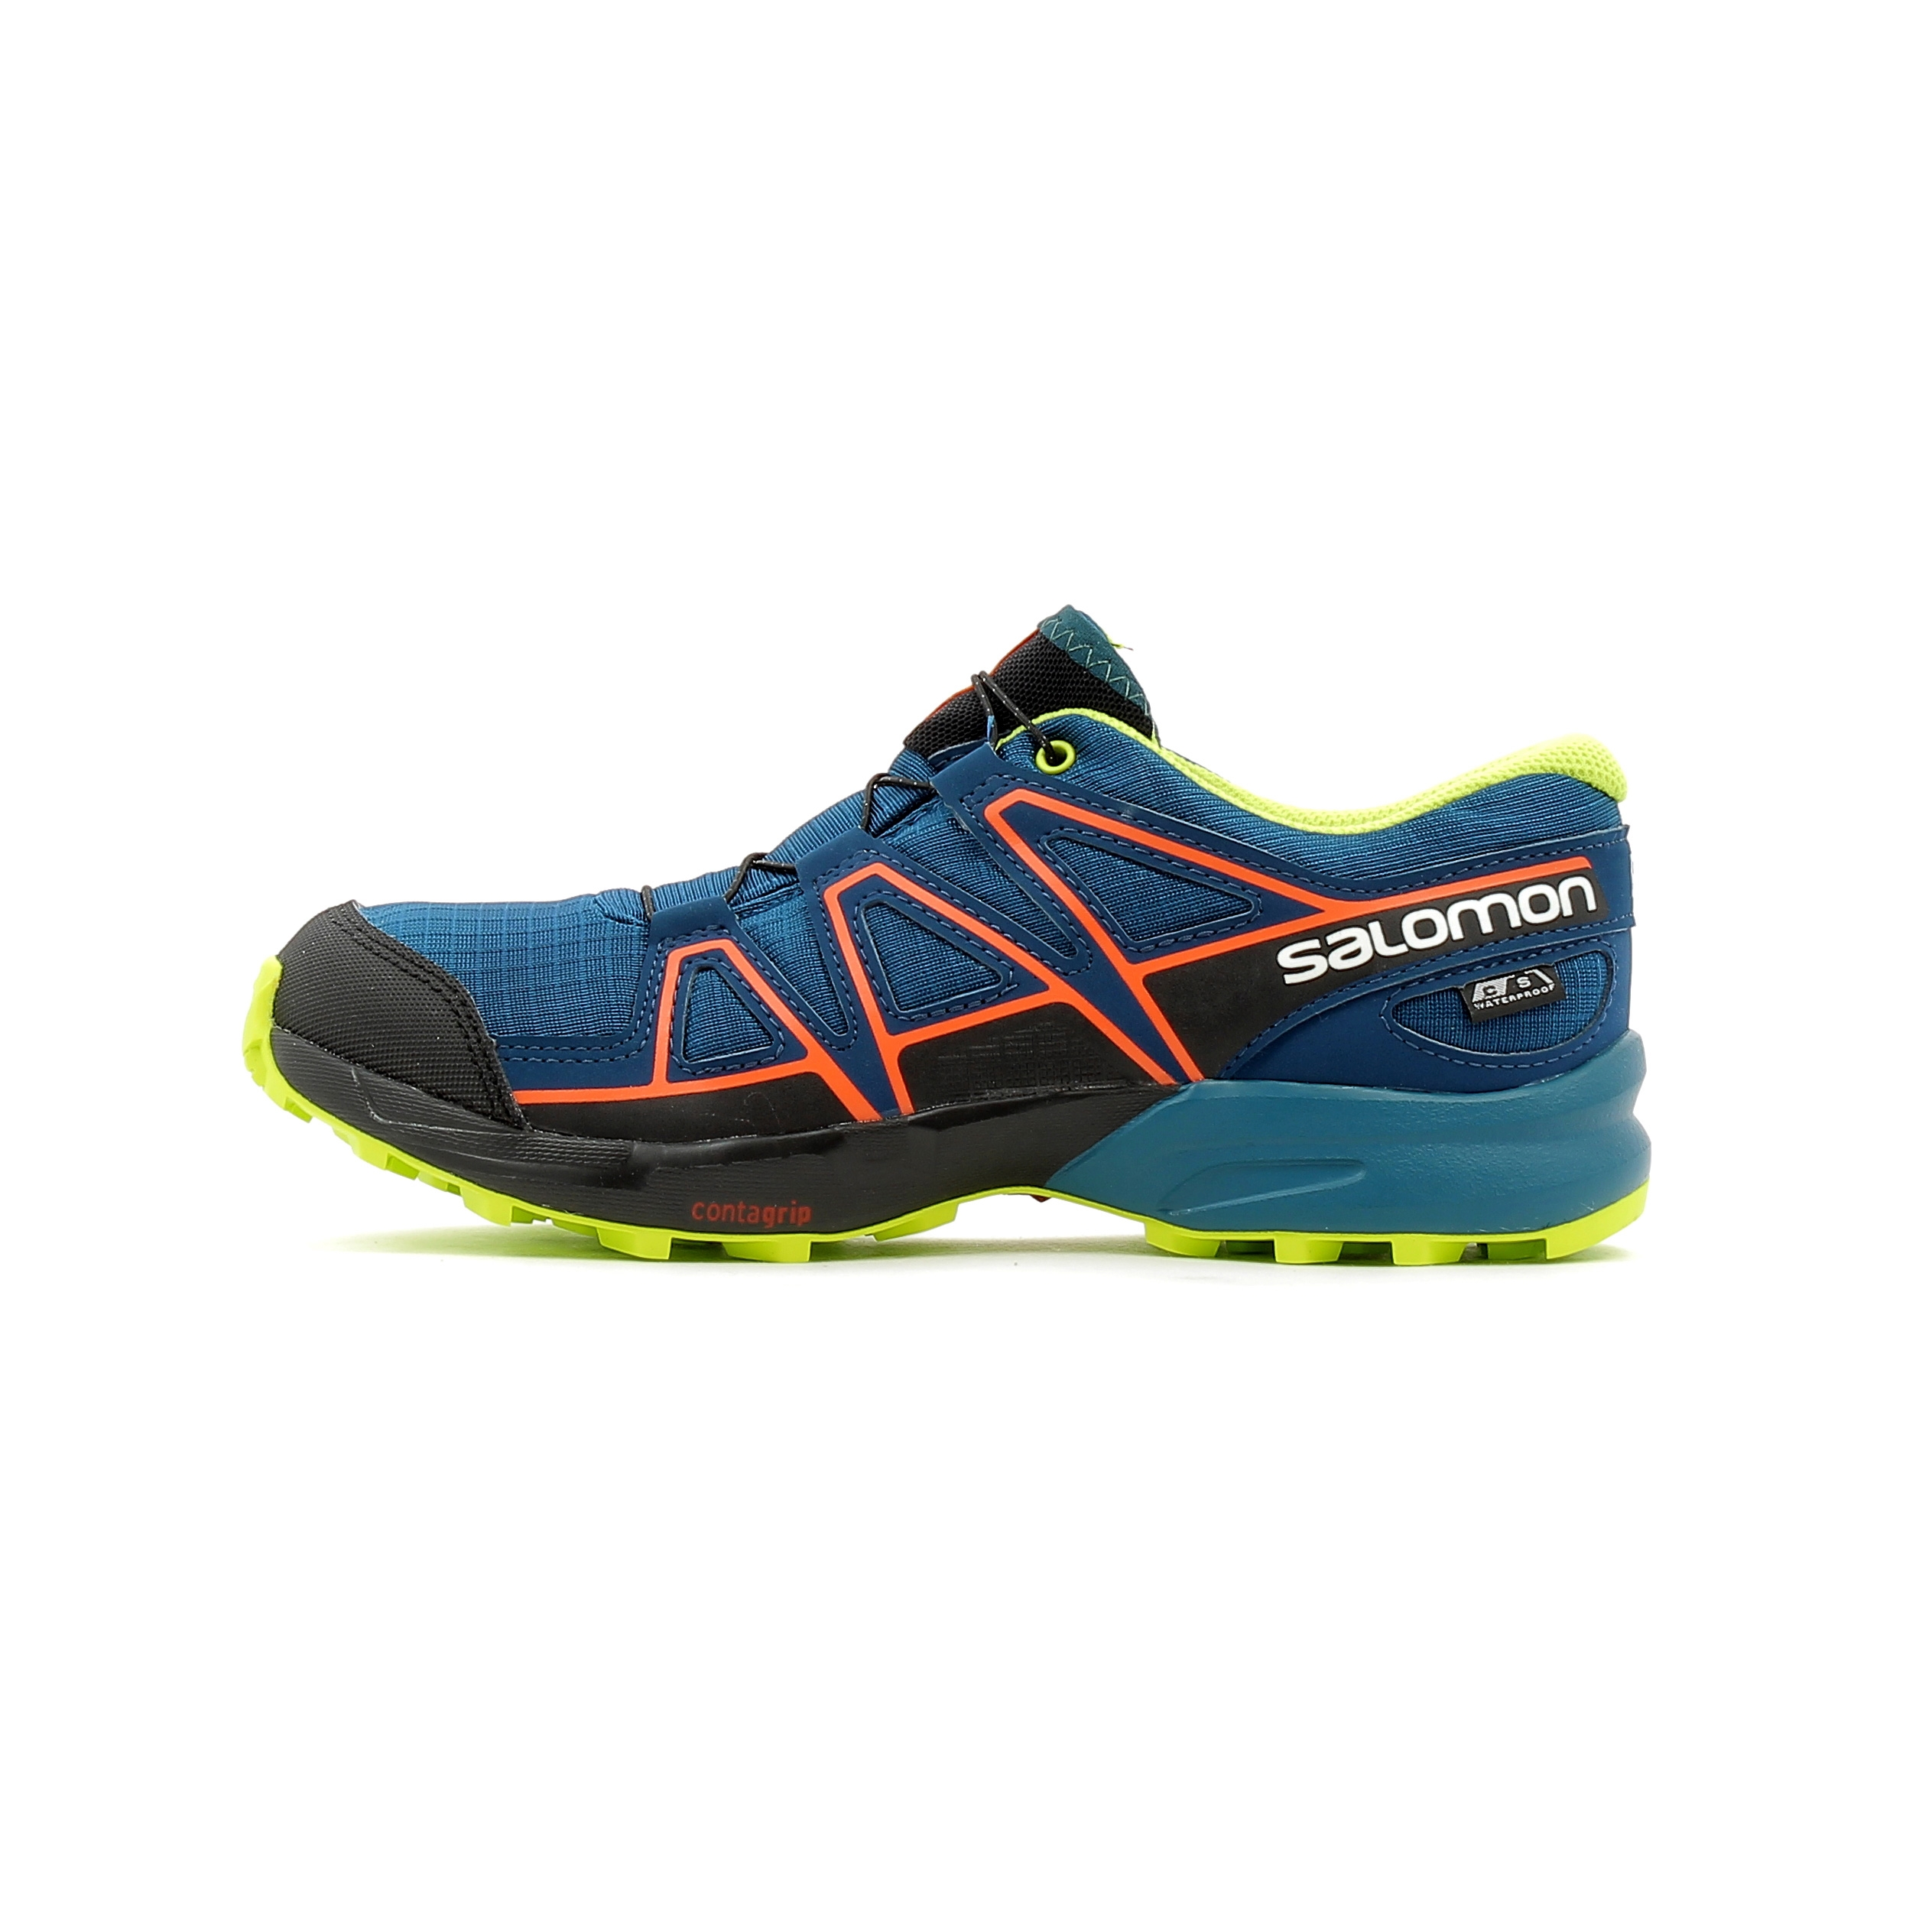 Bleu Cswp Junior Enfant Speedcross Chaussures Salomon xCwRqXw78n